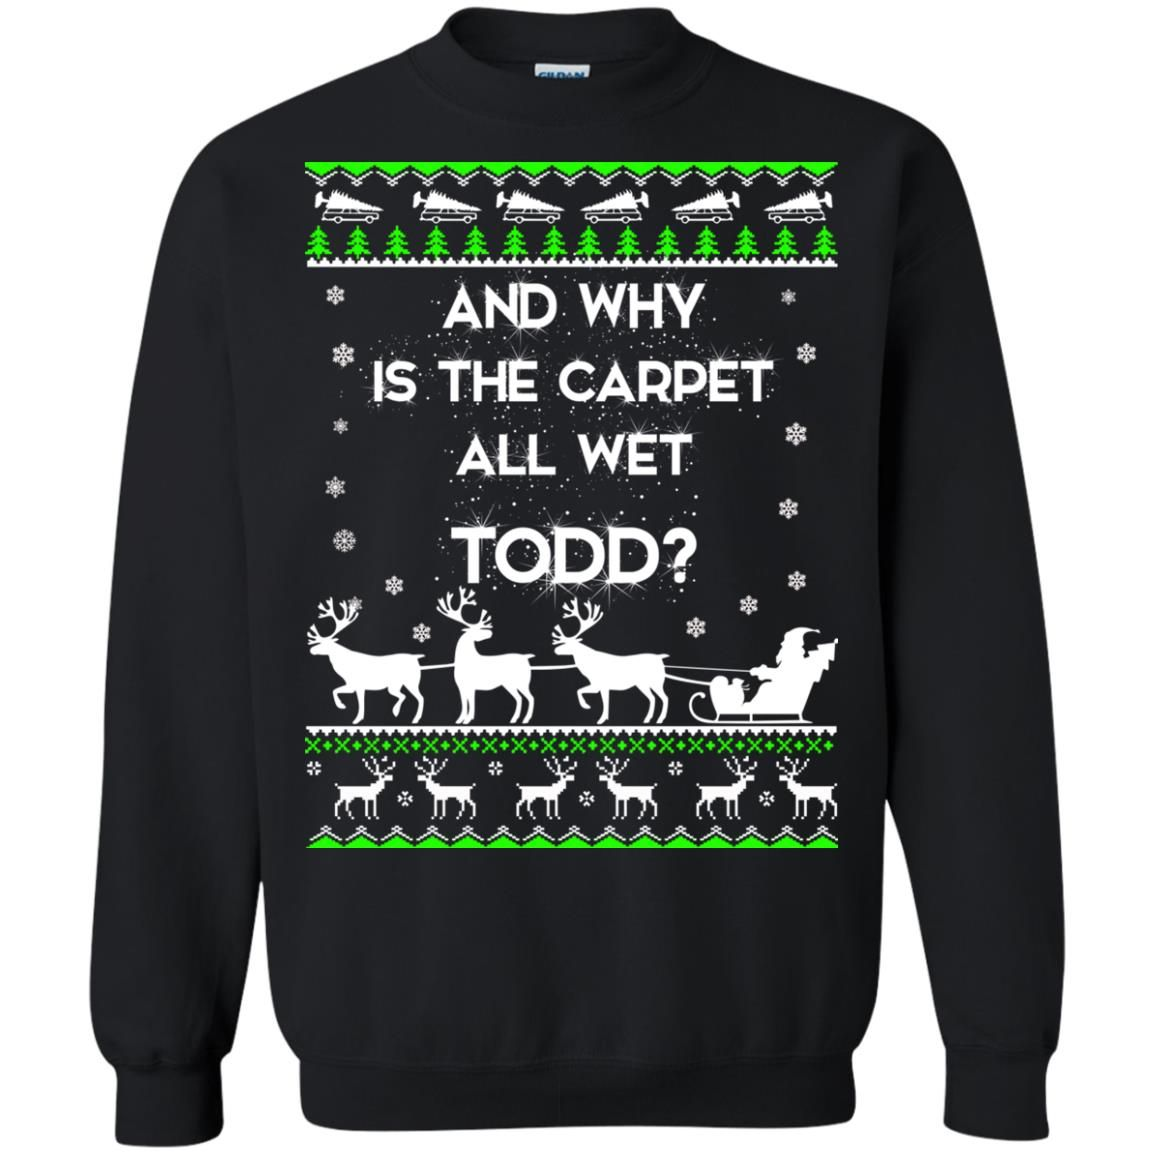 image 1607 - Christmas Vacation: And why is carpet all wet TODD ulgy sweater, hoodie